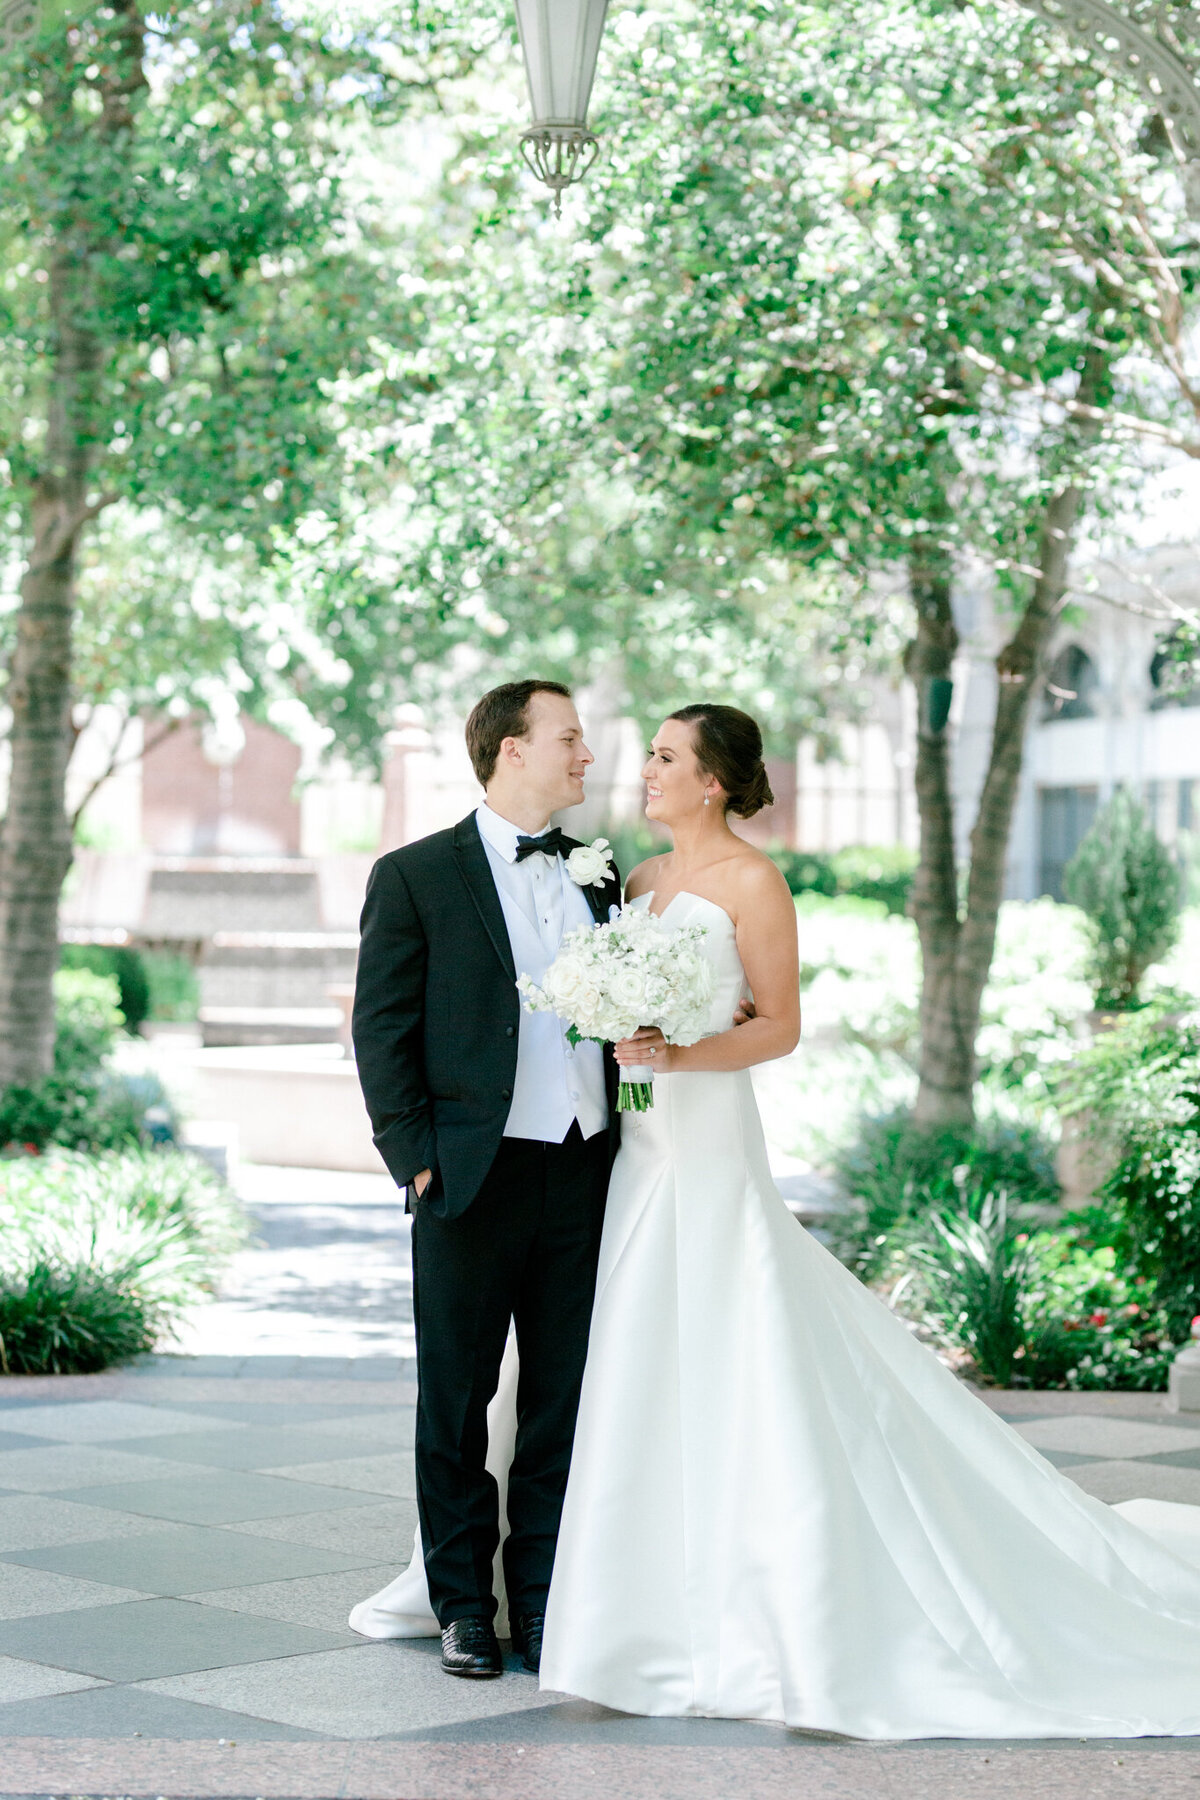 Wedding at the Crescent Court Hotel and Highland Park United Methodist Church in Dallas | Sami Kathryn Photography | DFW Wedding Photographer-13